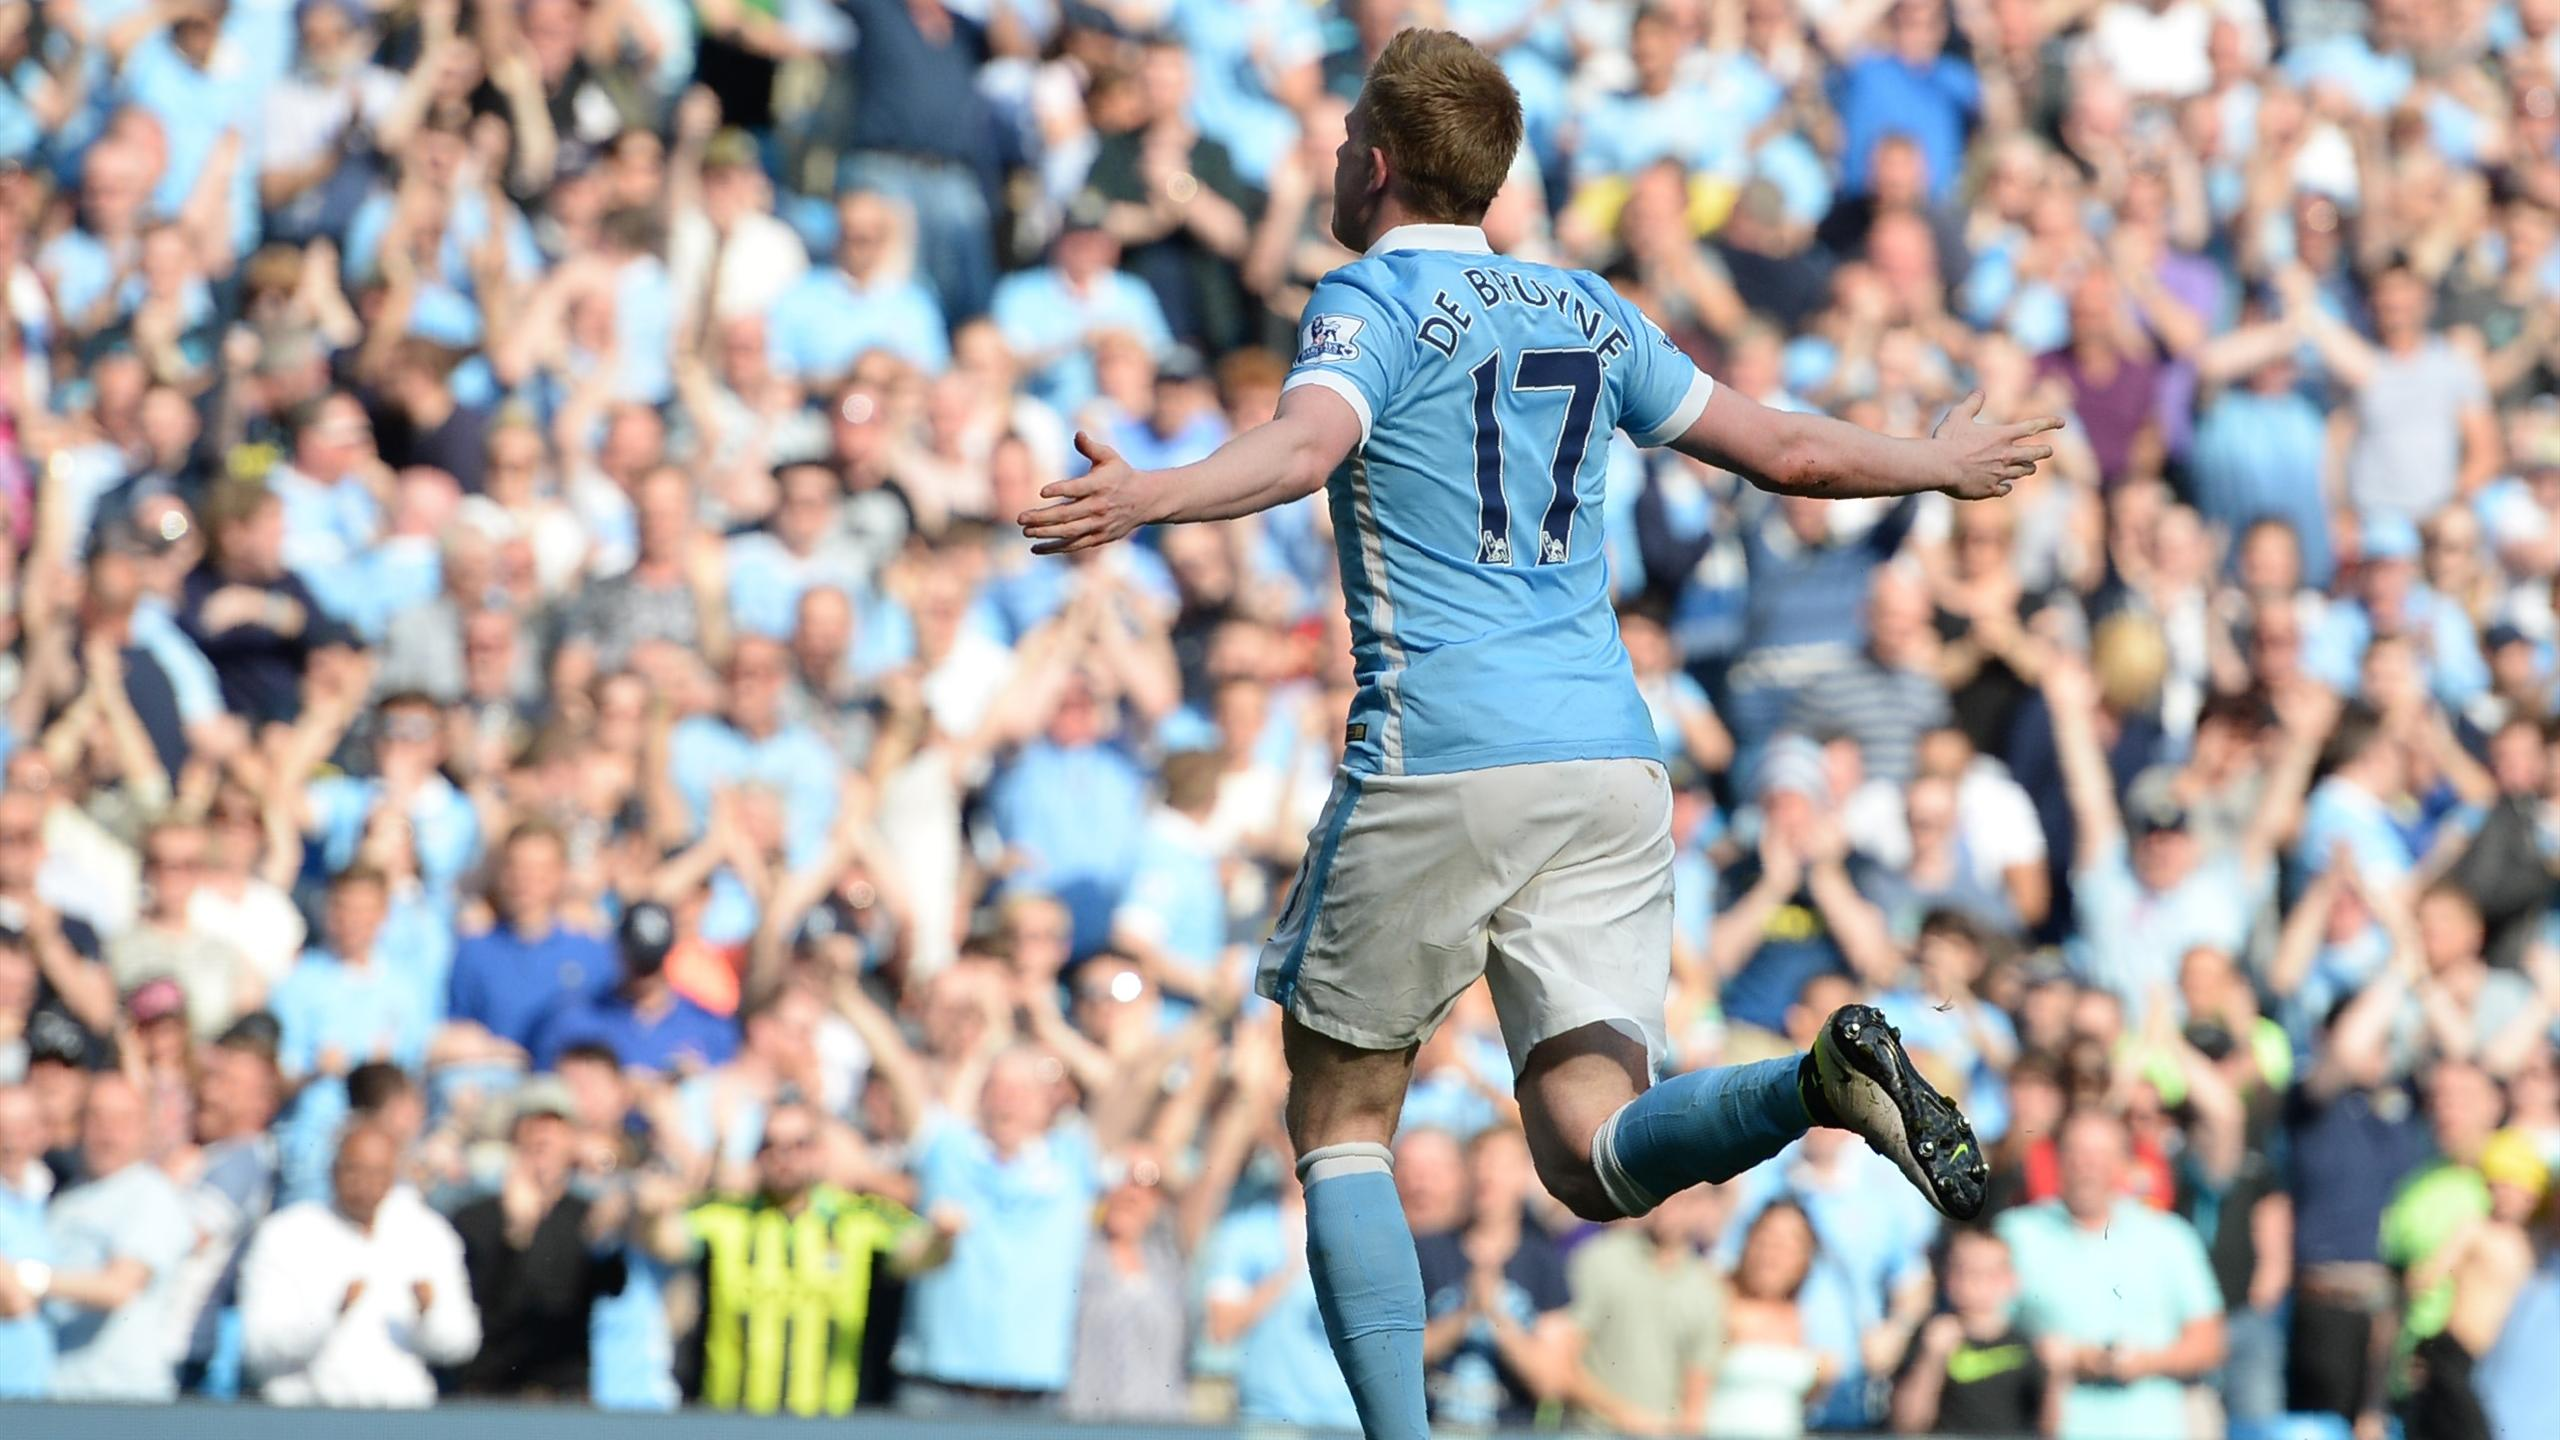 Manchester City's Belgian midfielder Kevin De Bruyne celebrates after scoring